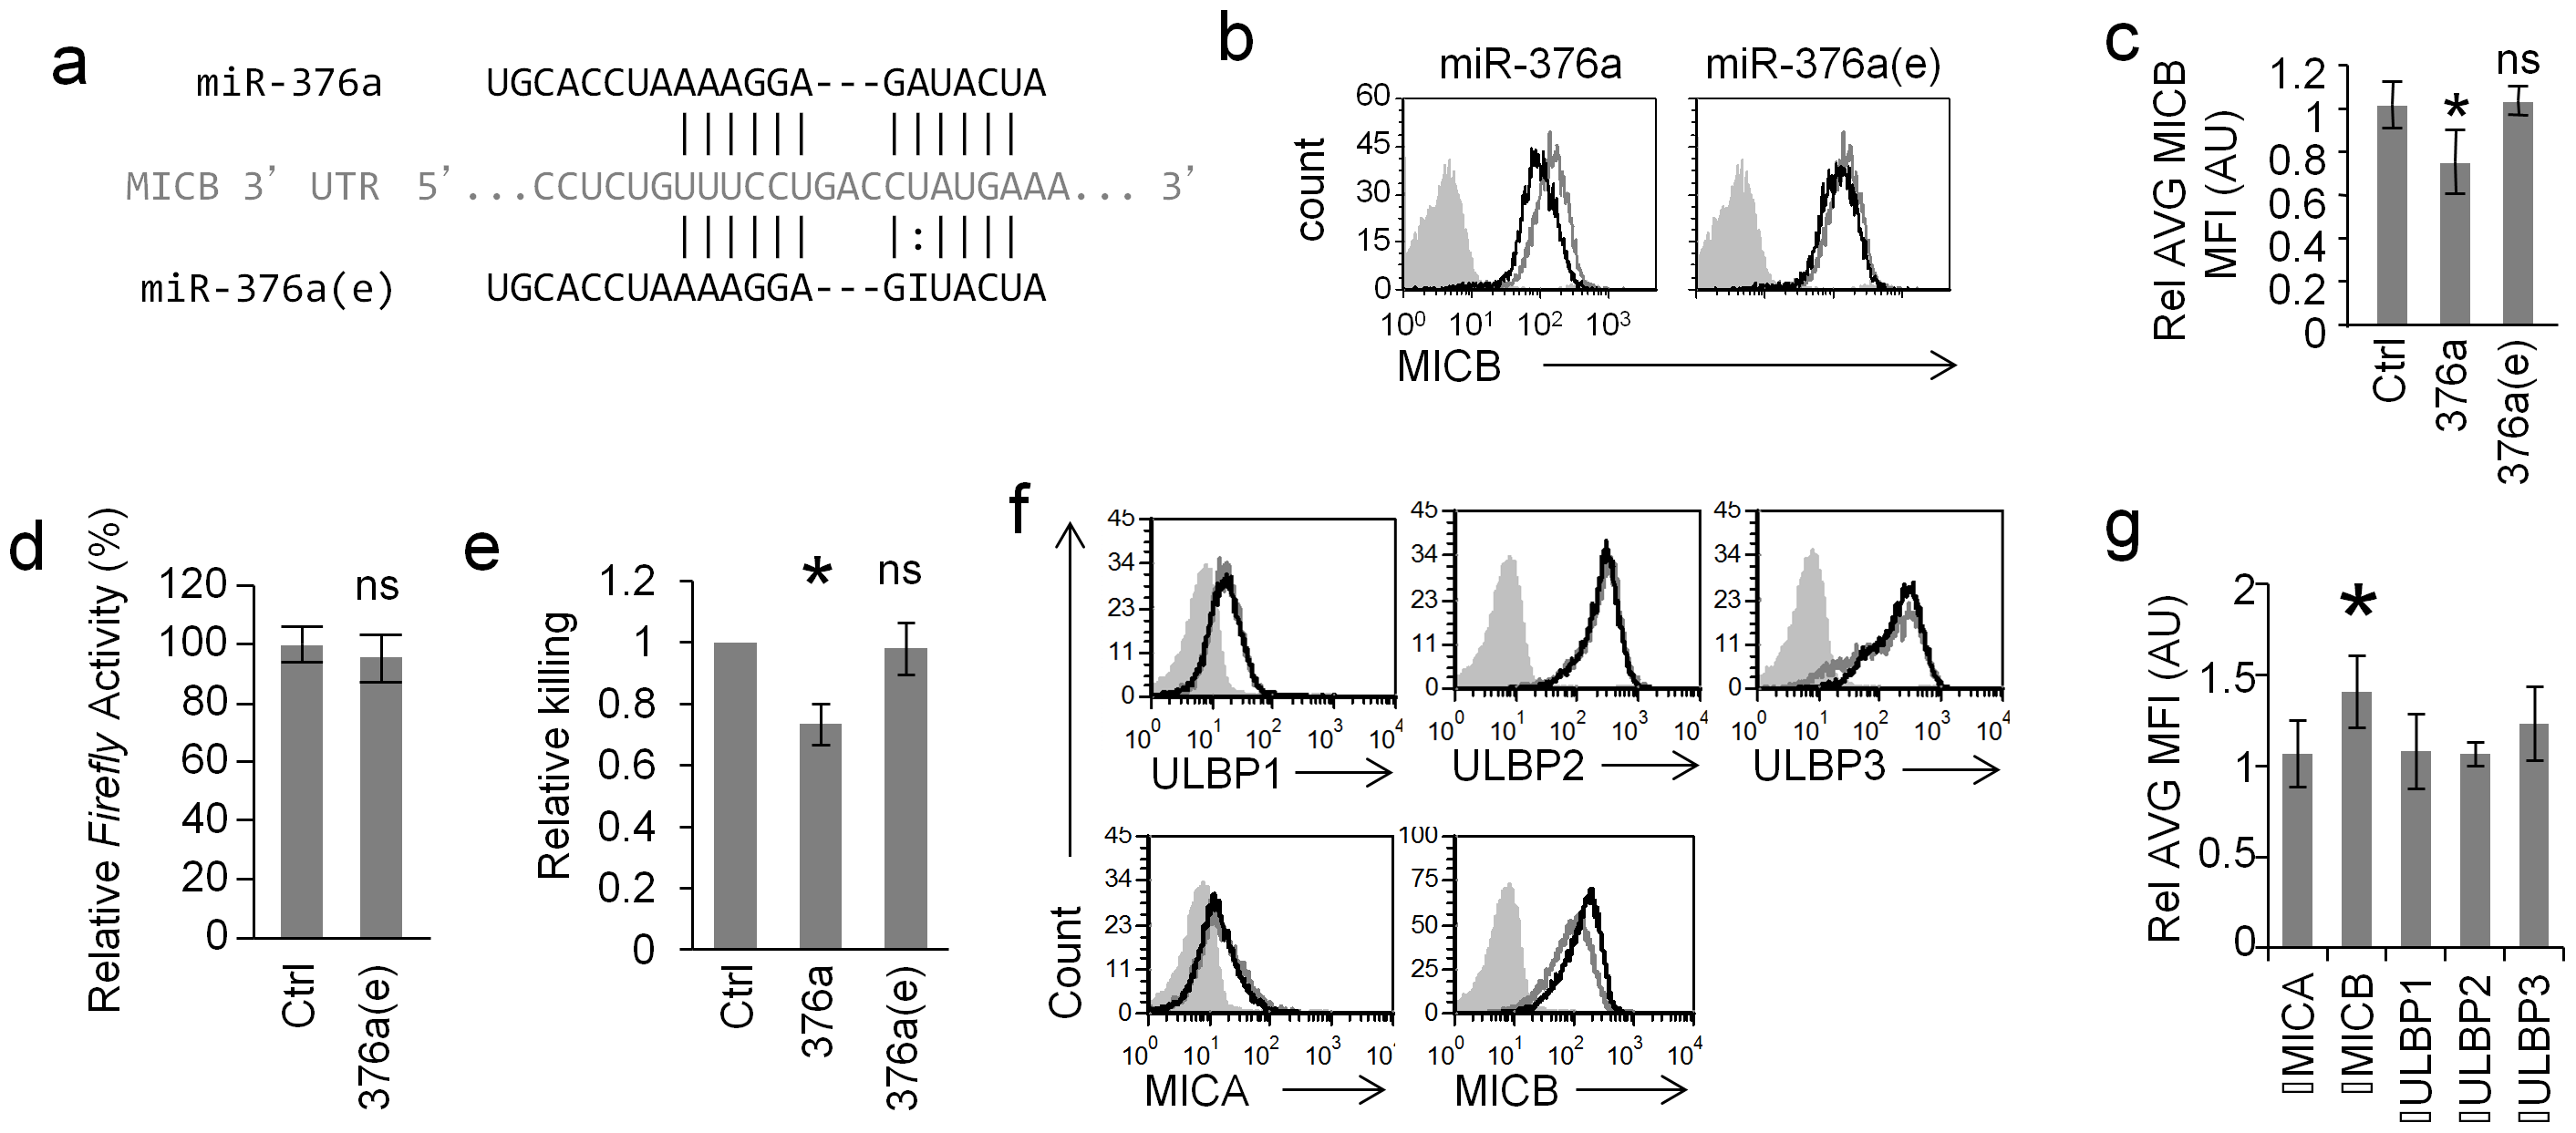 RNA editing of miR-376a abolishes its regulation of MICB.